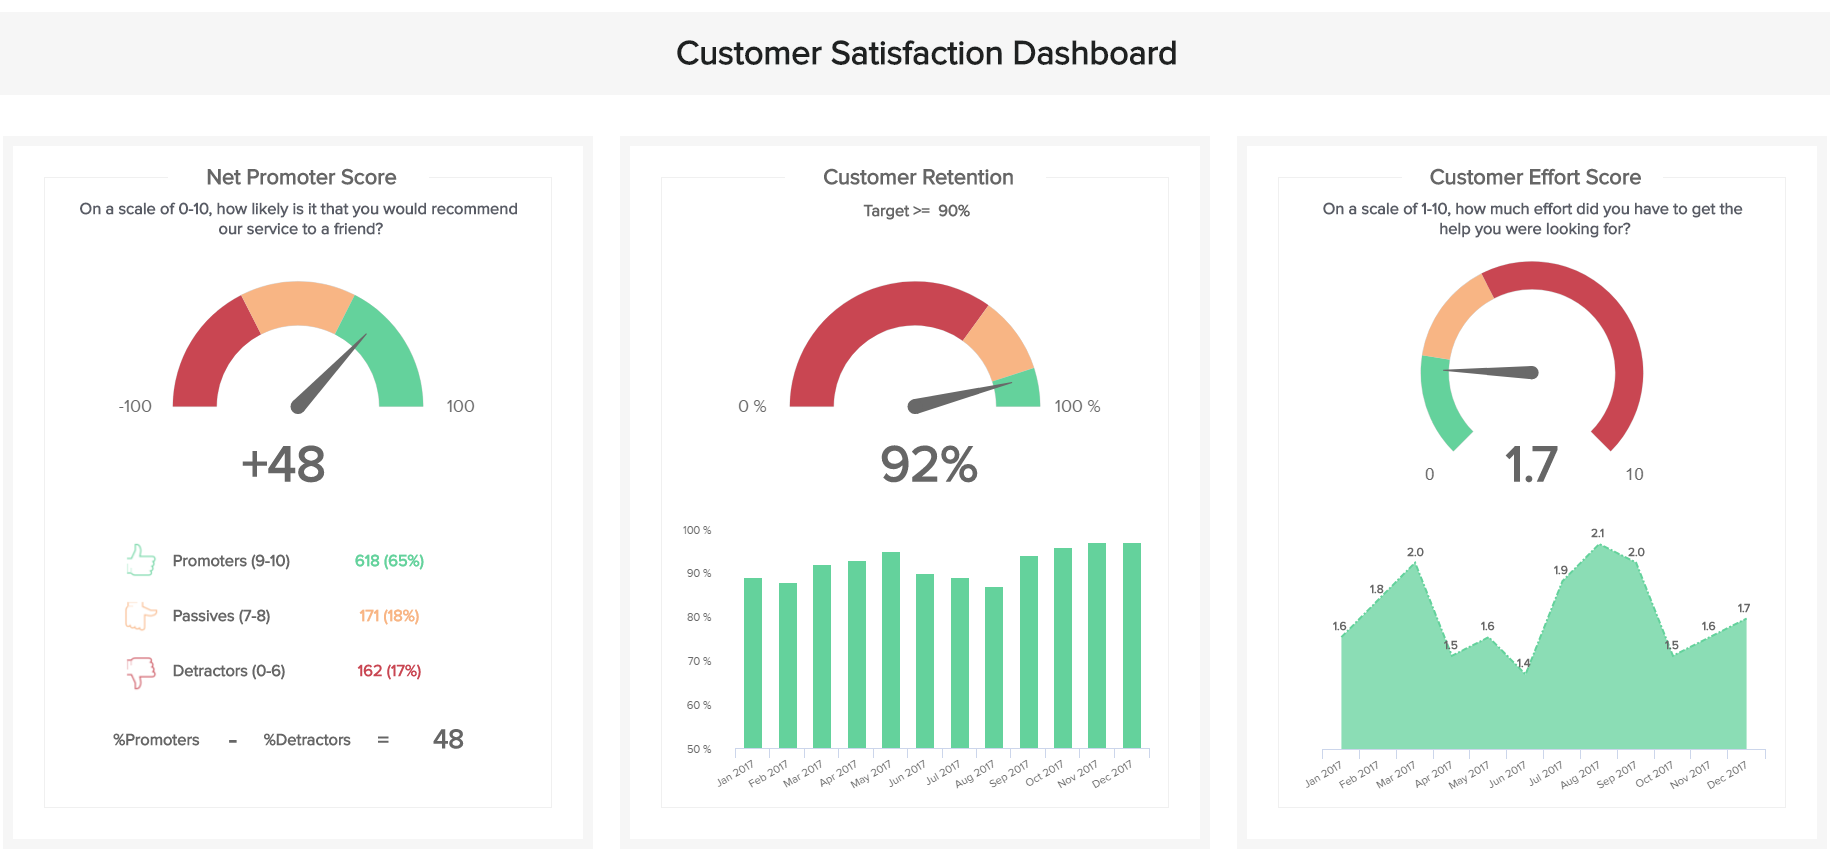 Customer satisfaction digital dashboard provides information about the beating heart of any organization: its customers.